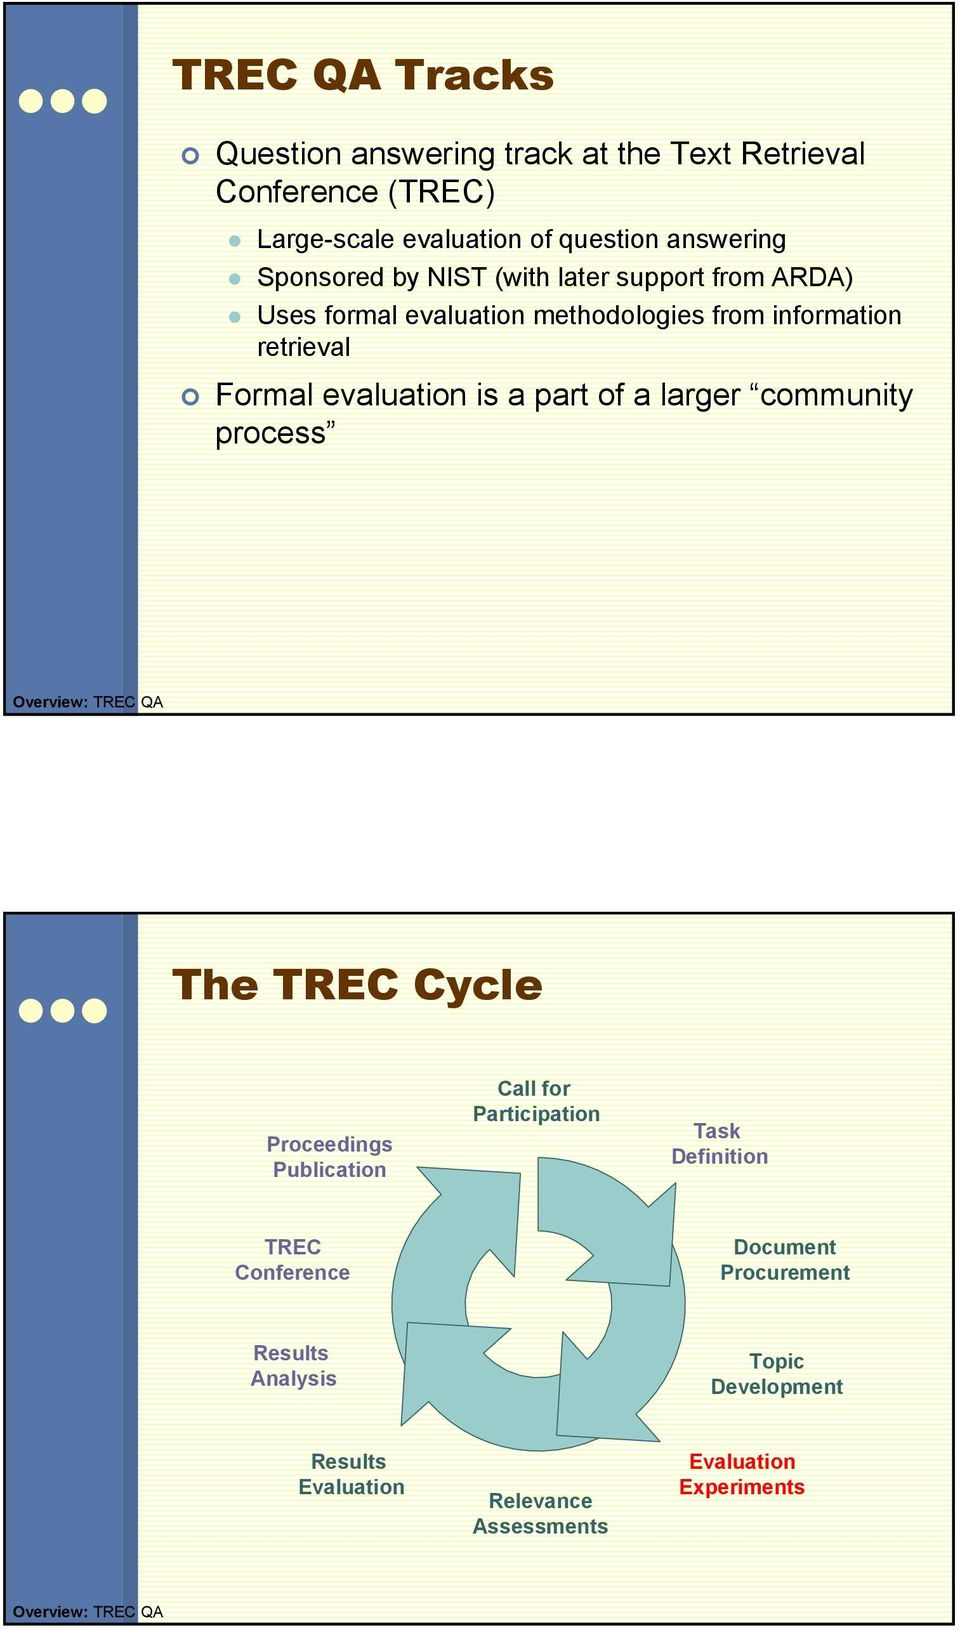 larger community process Overview: TREC QA The TREC Cycle Proceedings Publication Call for Participation Task Definition TREC Conference